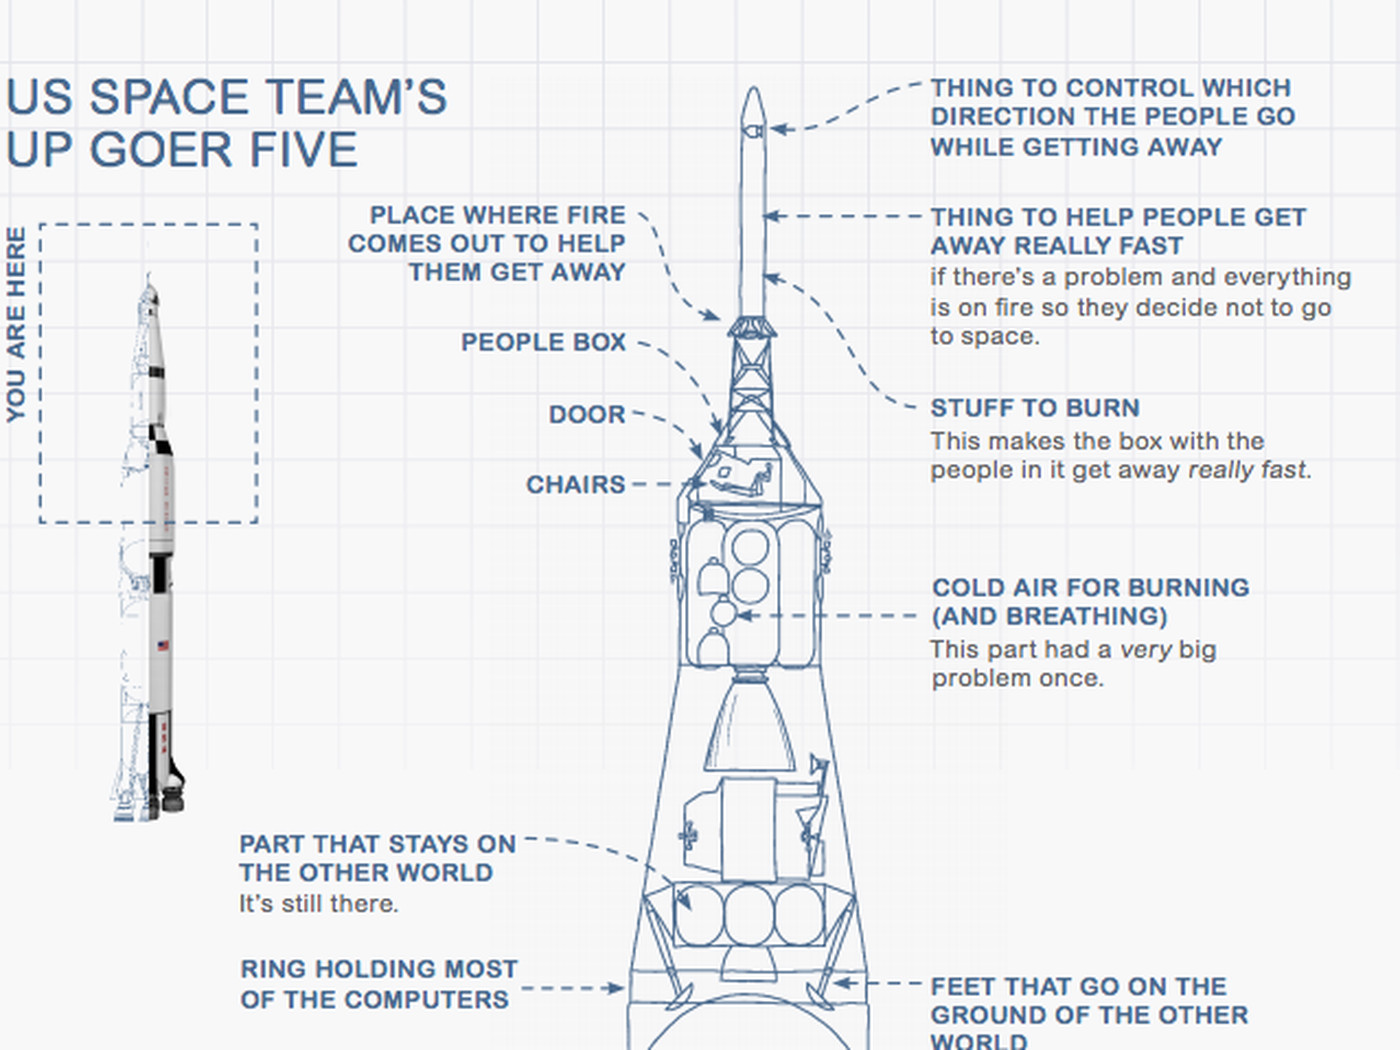 Xkcds randall munroe is providing illustrations for science xkcds randall munroe is providing illustrations for science textbooks the verge urtaz Image collections